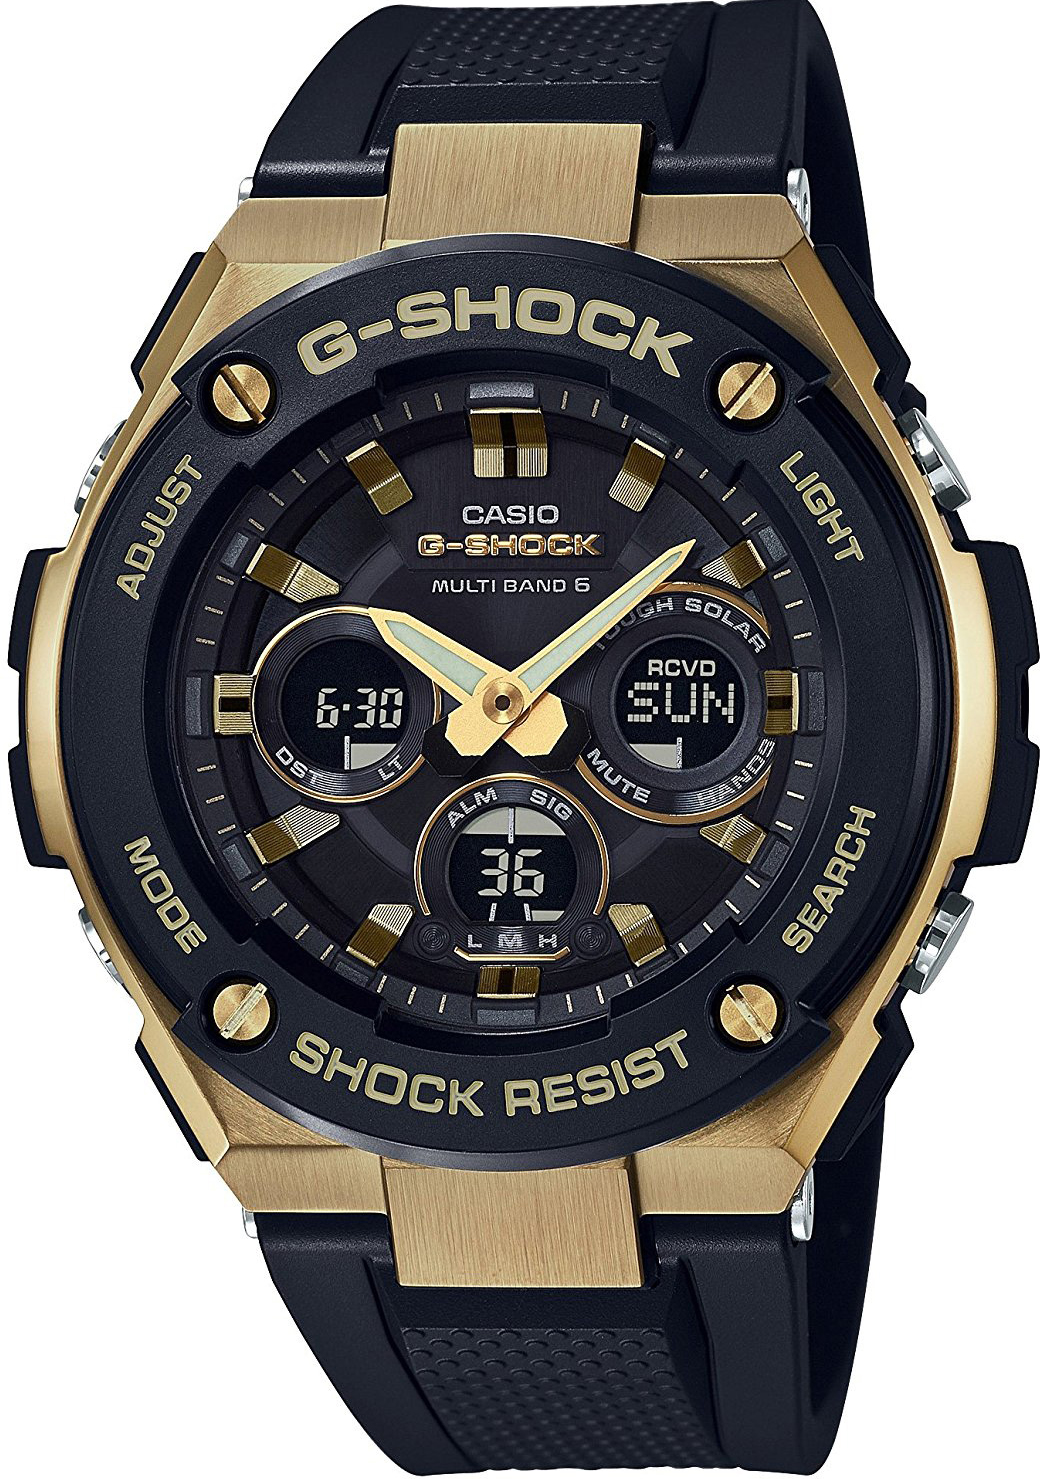 Casio G-shock G-Steel GST-W300G-1A9 цена и фото